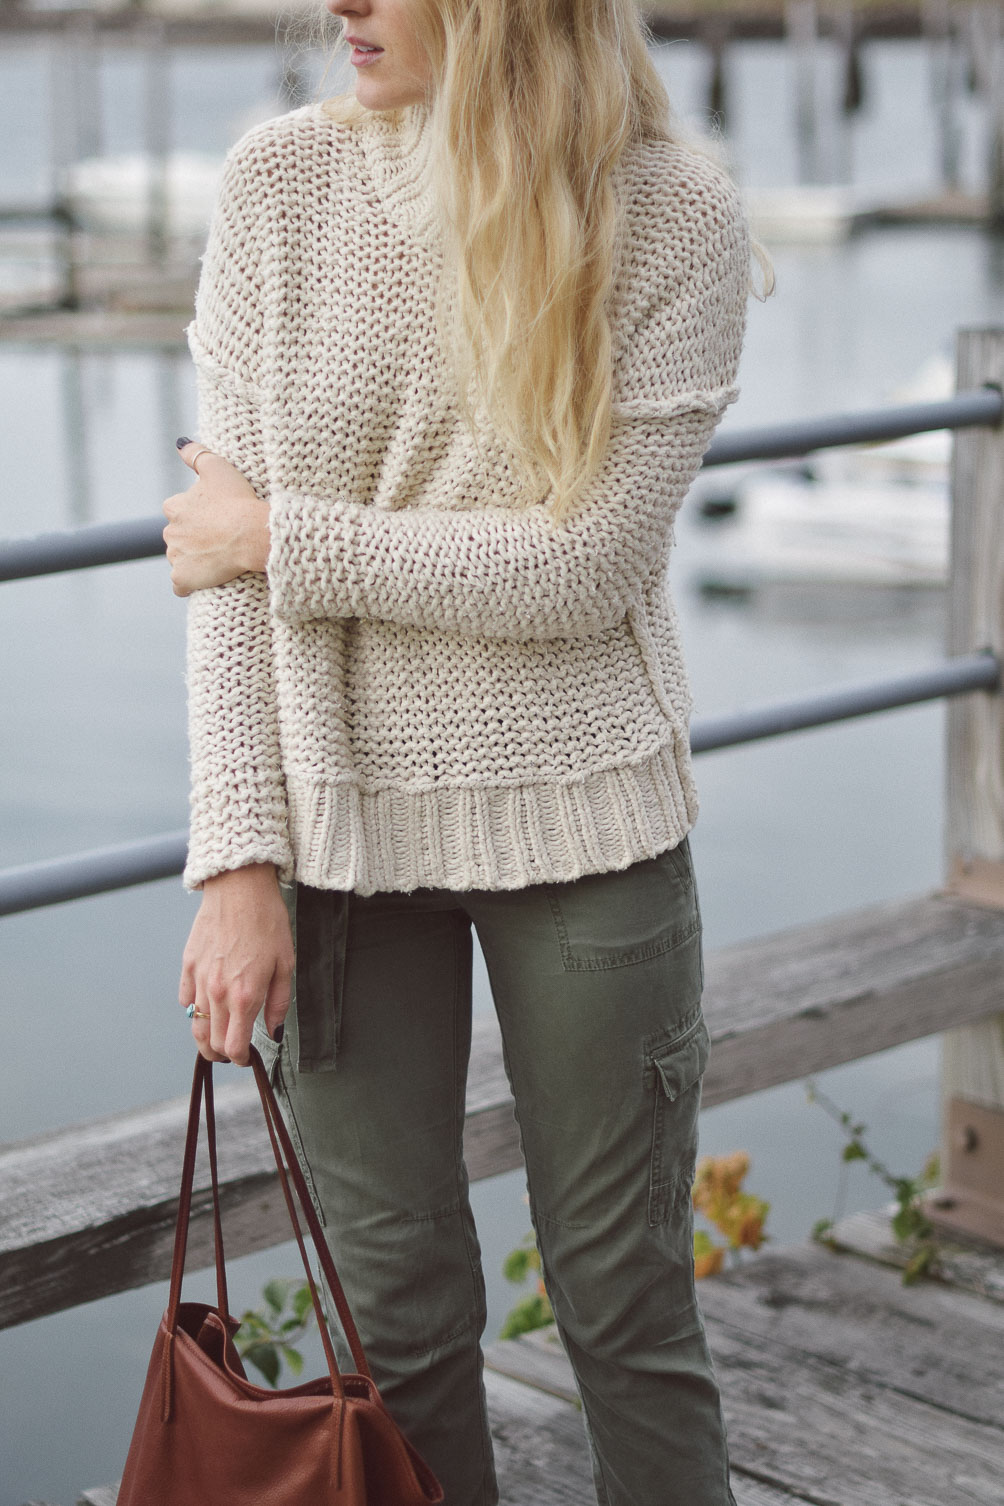 Free People chunky knit sweater with AG cargo pants on Leslie Musser one brass fox